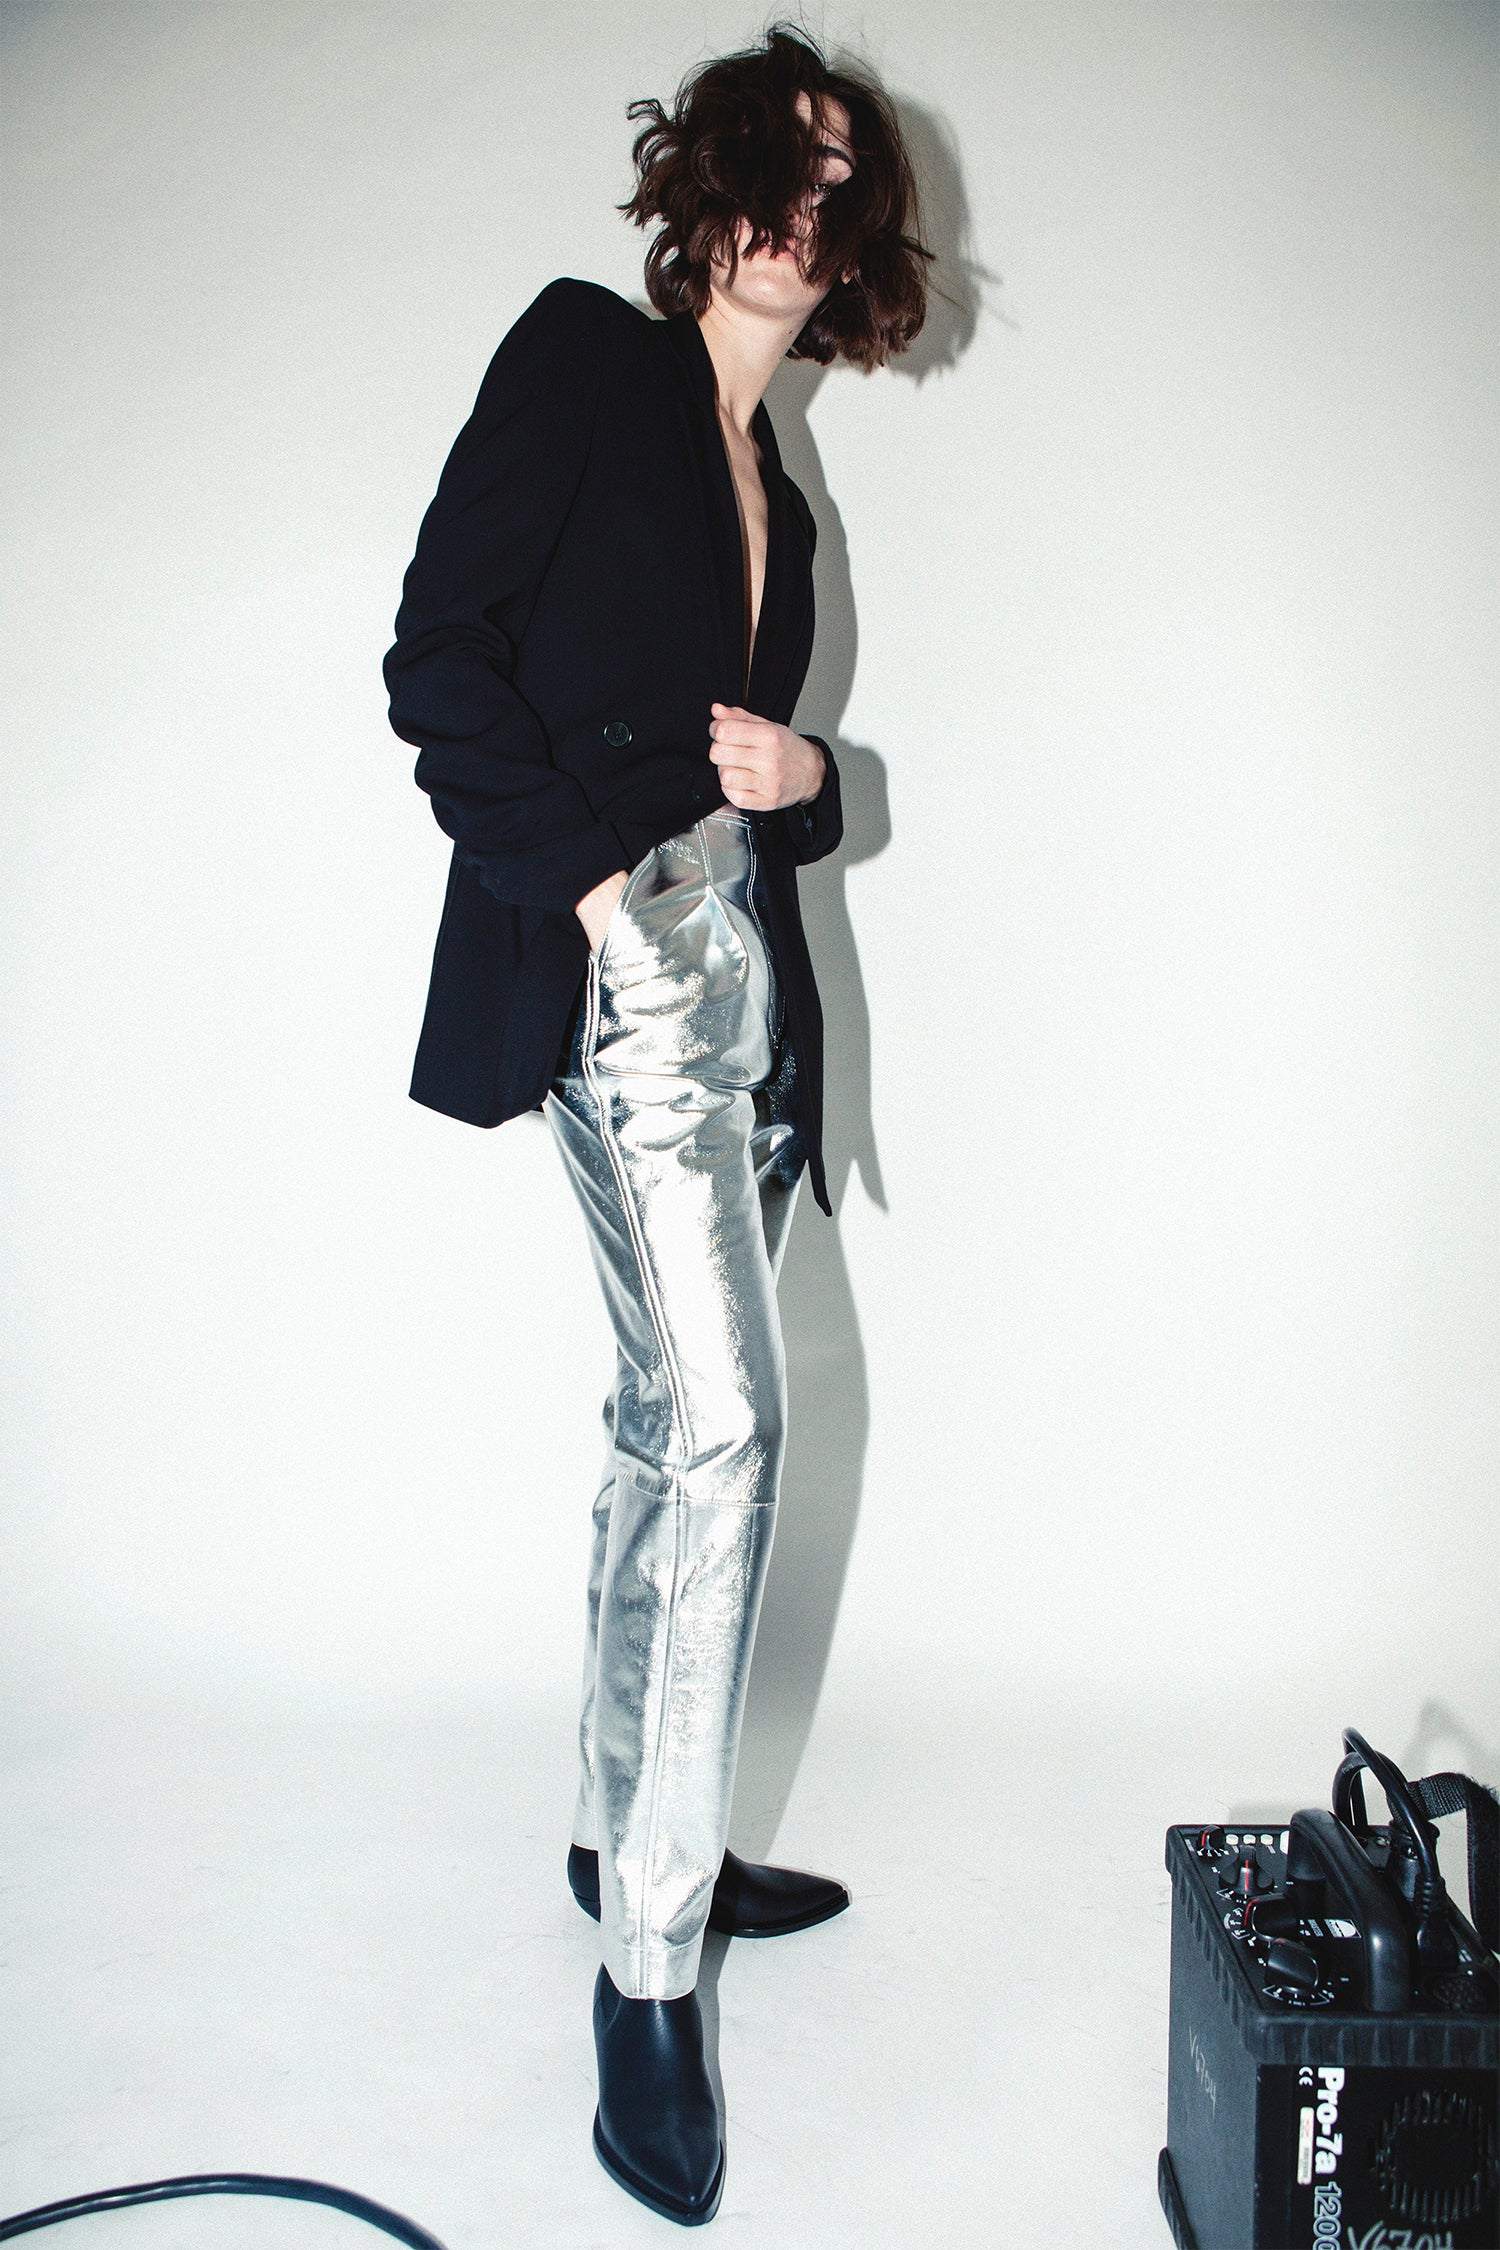 Robert Rodriguez Studio Leather Trousers Pants Bottoms Metallic